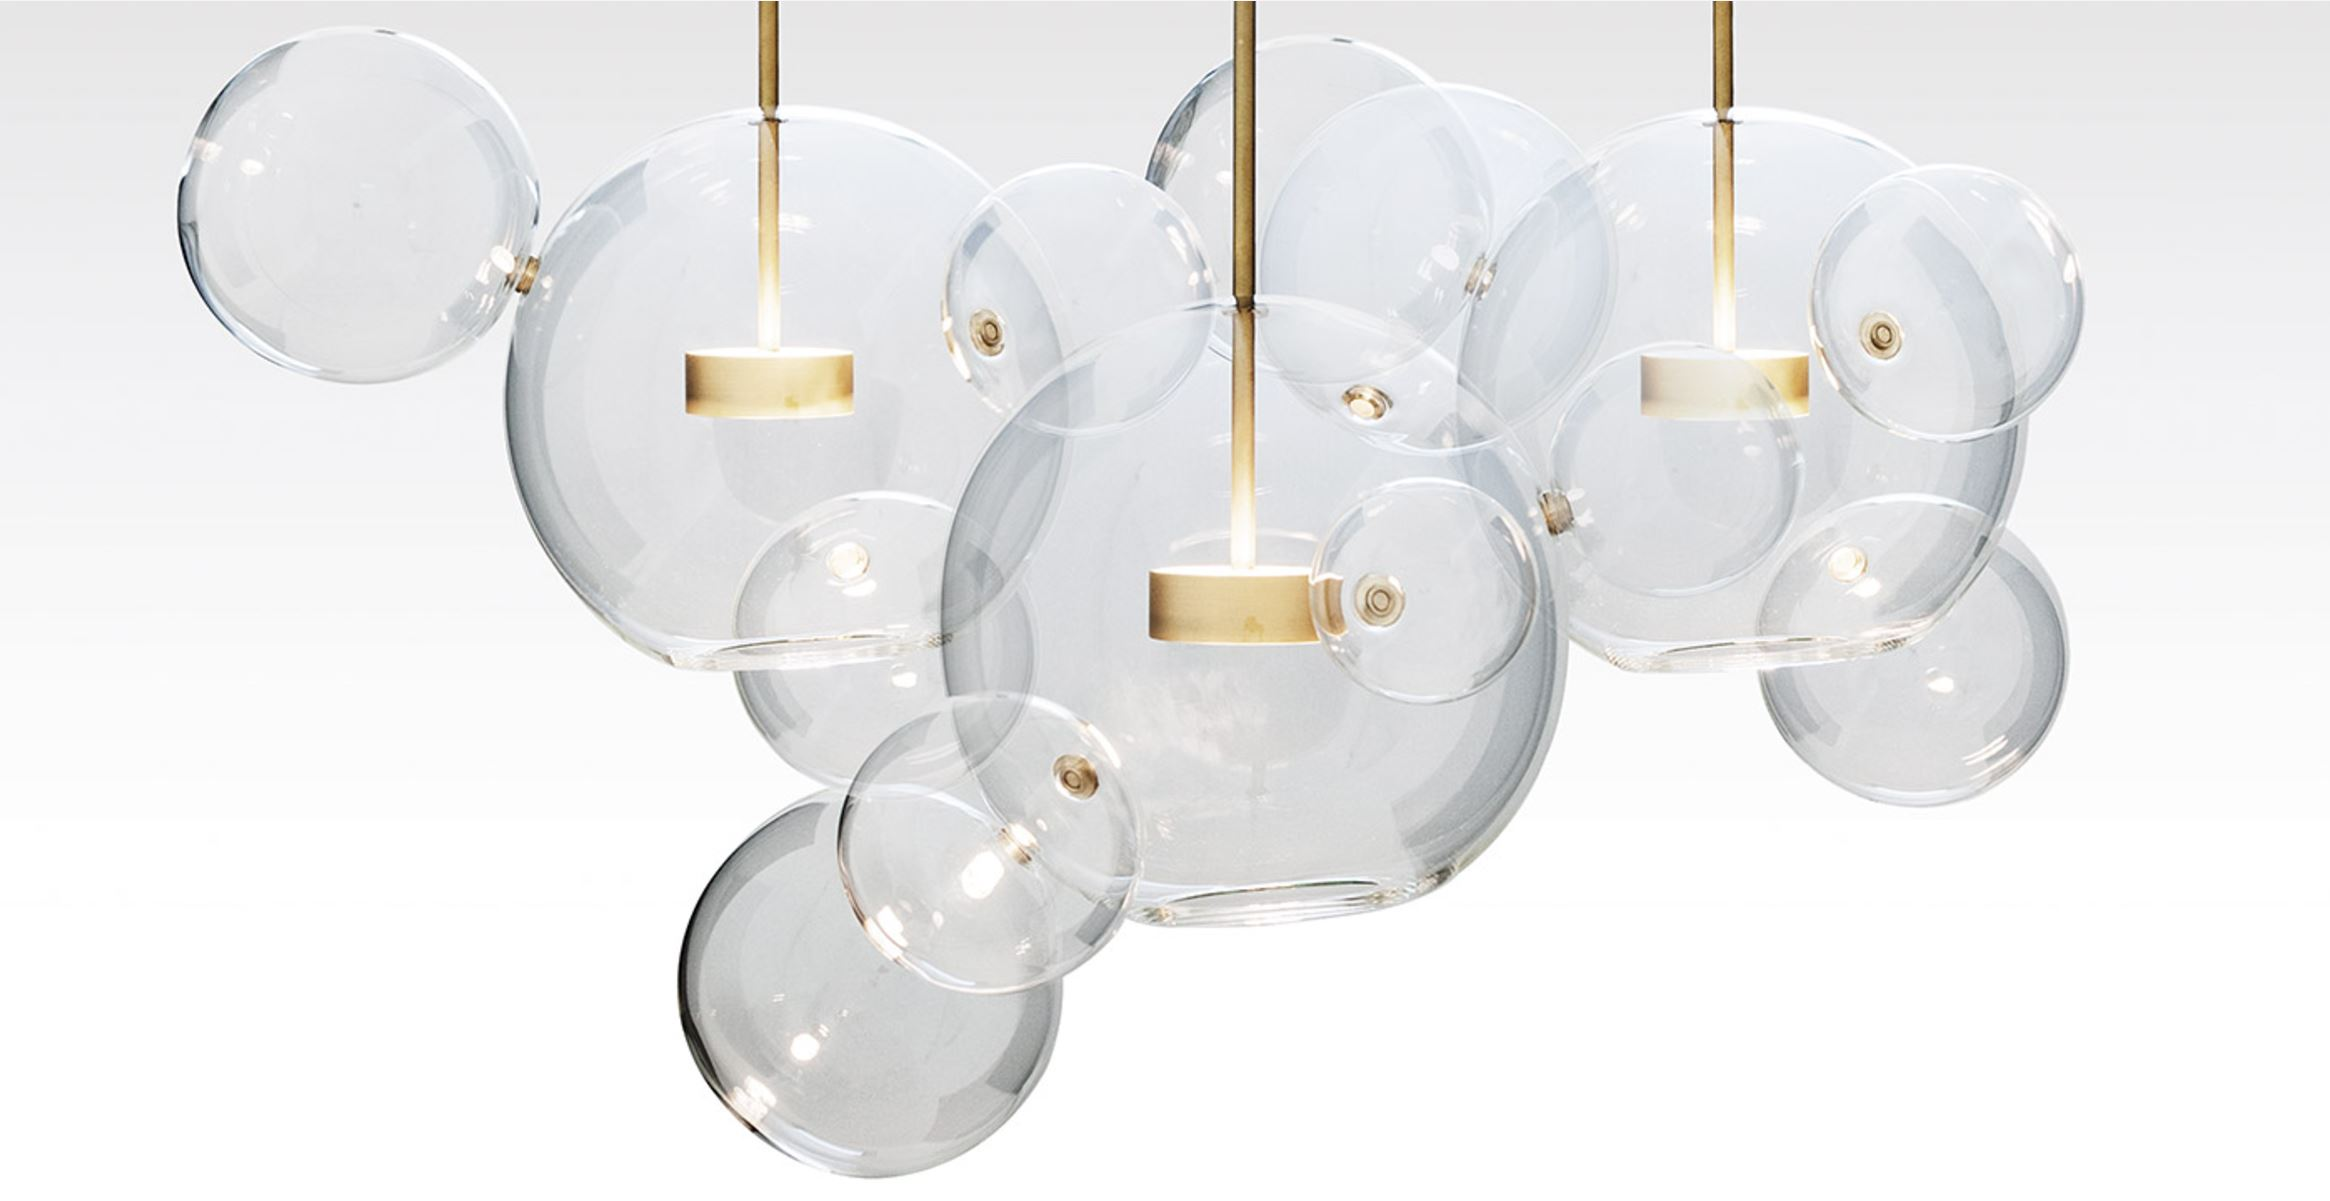 Giopato and Coombes are a dynamic husband and wife duo, creating inspiring pieces including one of our favourites - the Bolle pendant - inspired by soap bubbles!